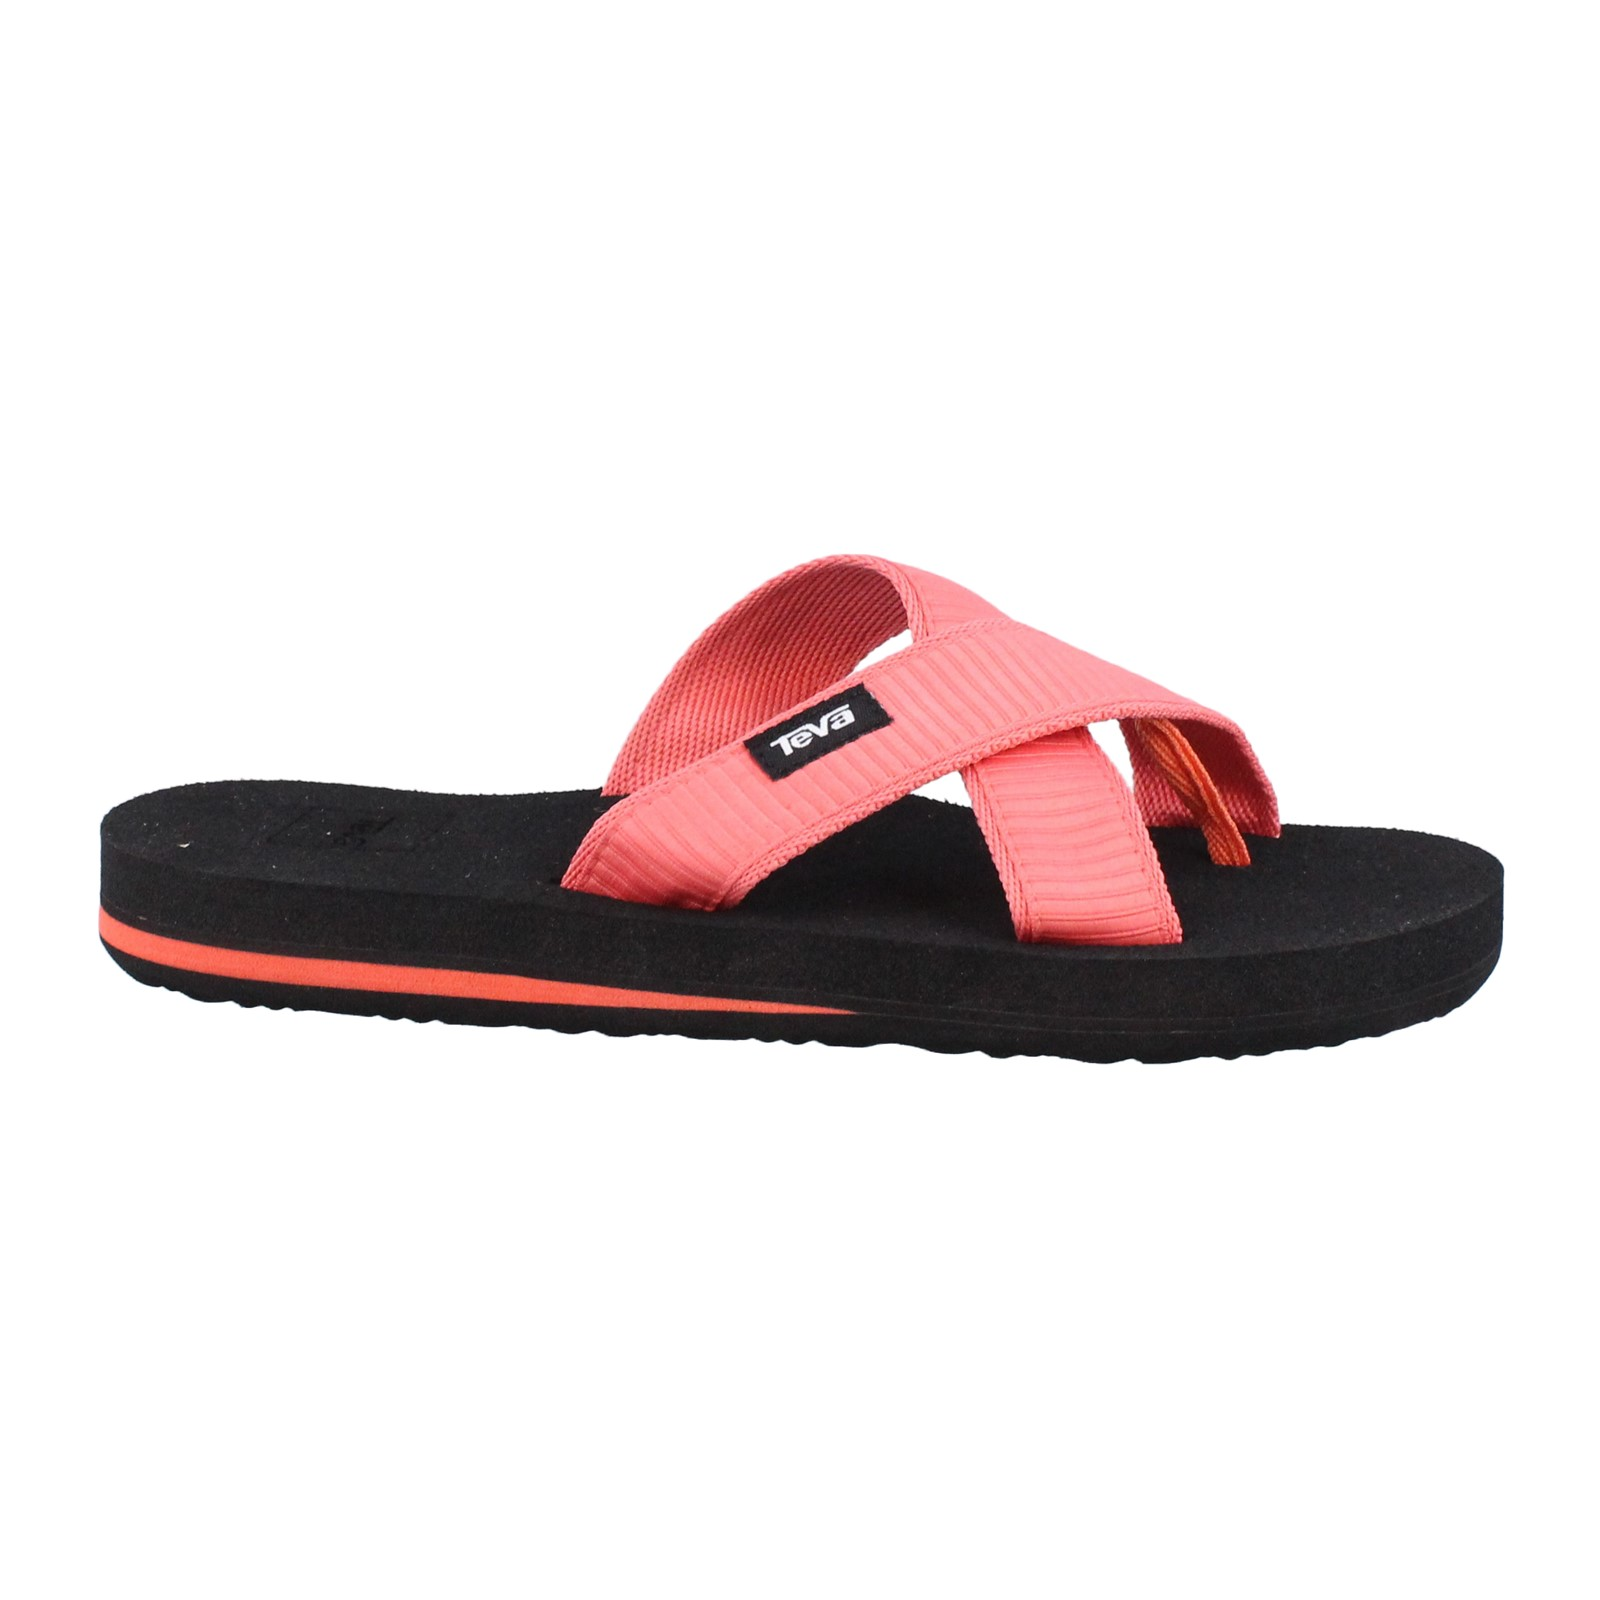 Women's Teva, Mush Kalea Slide Sandals